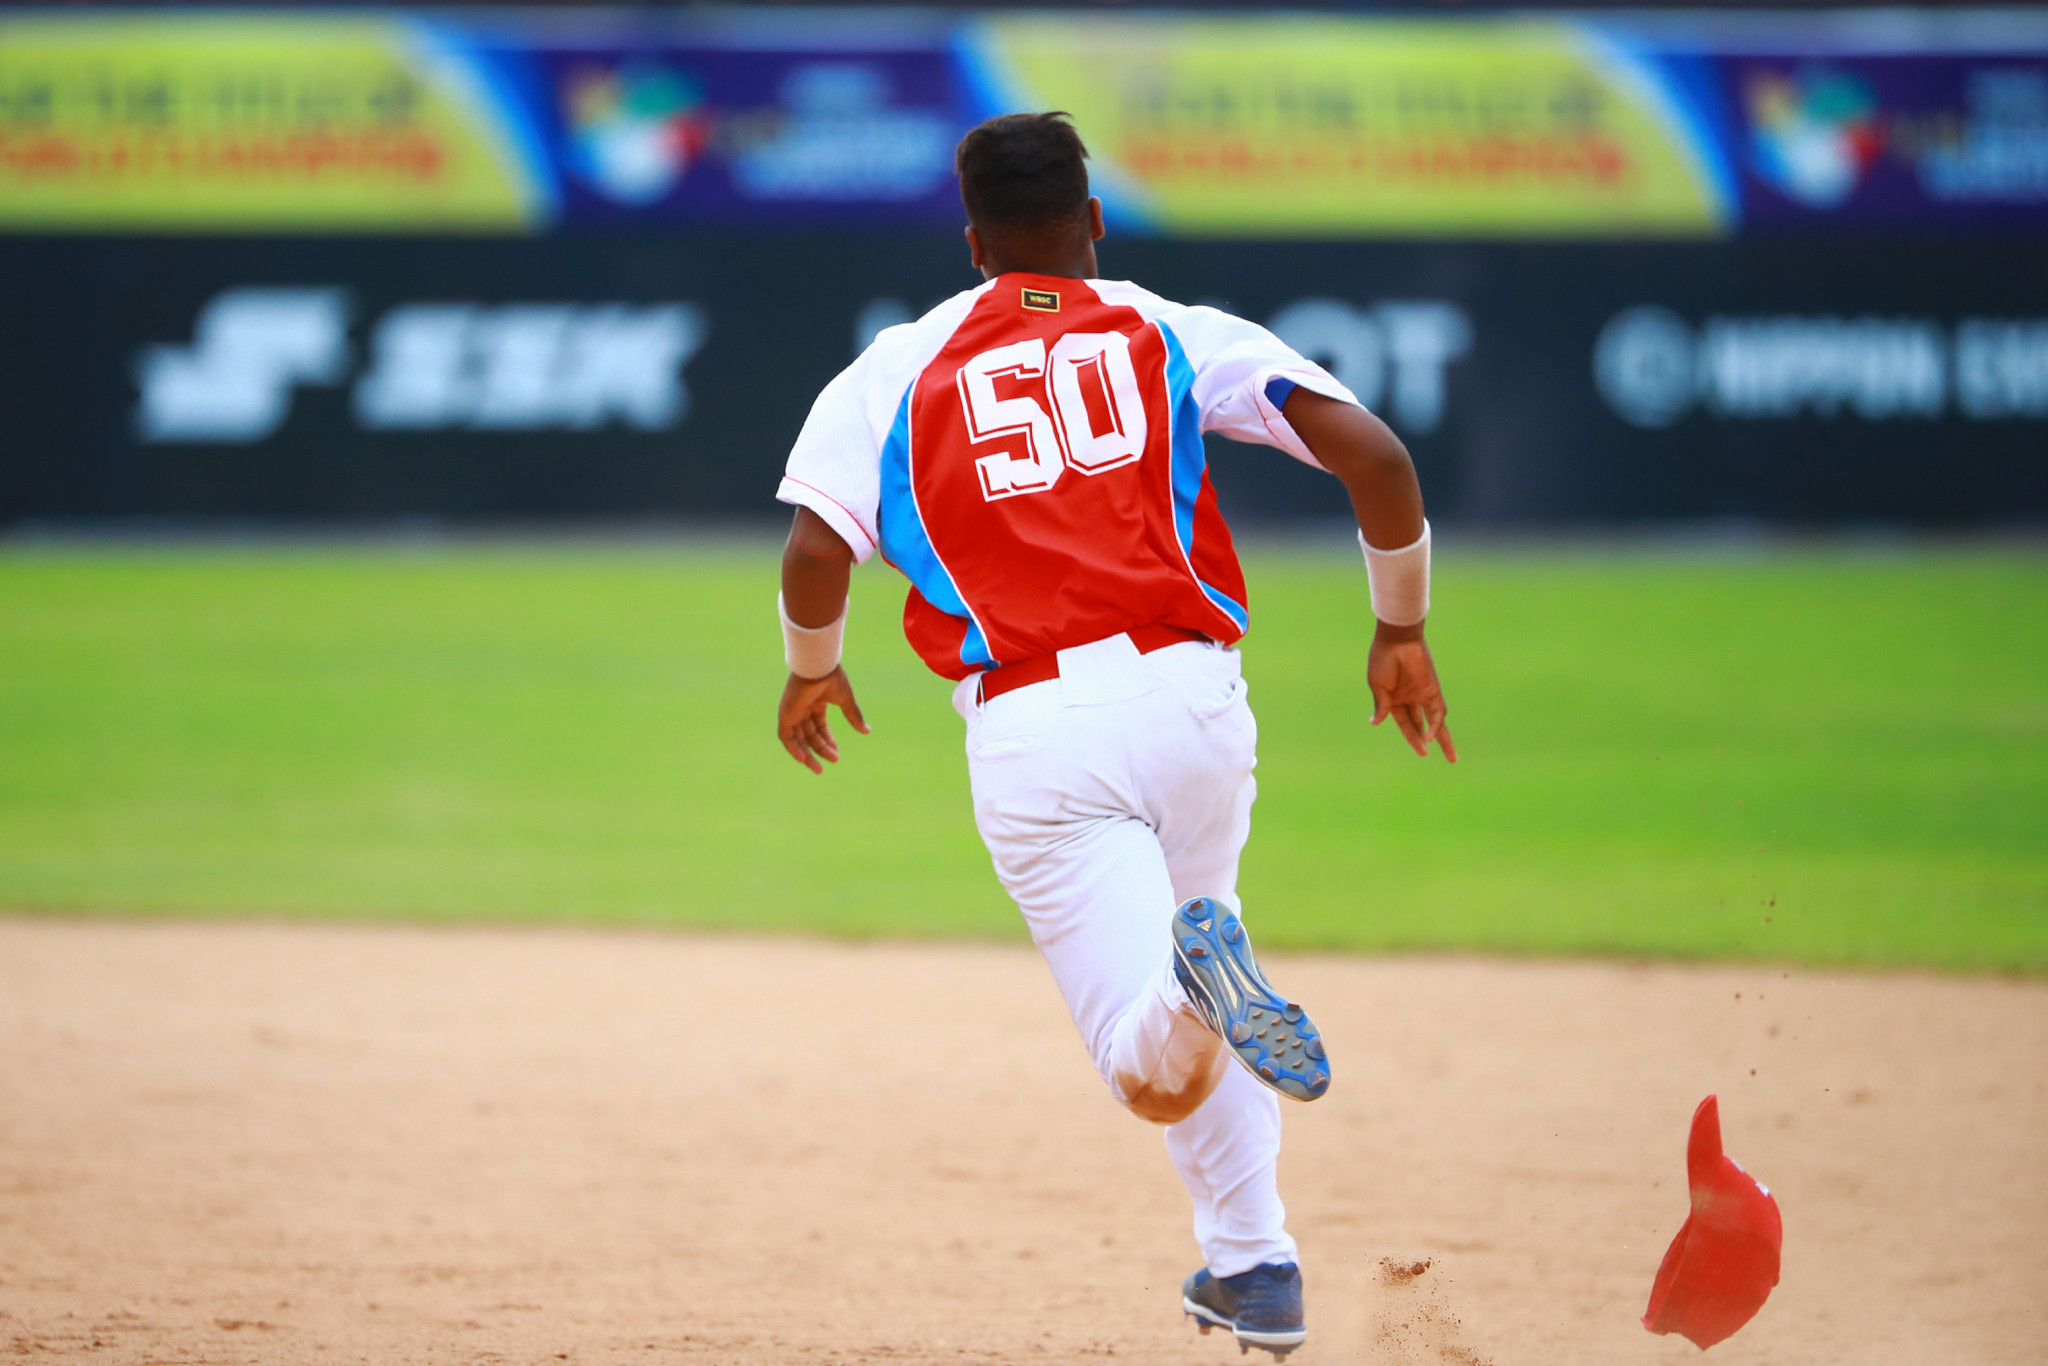 Under-18 Baseball World Cup postponed until 2022 due to COVID-19